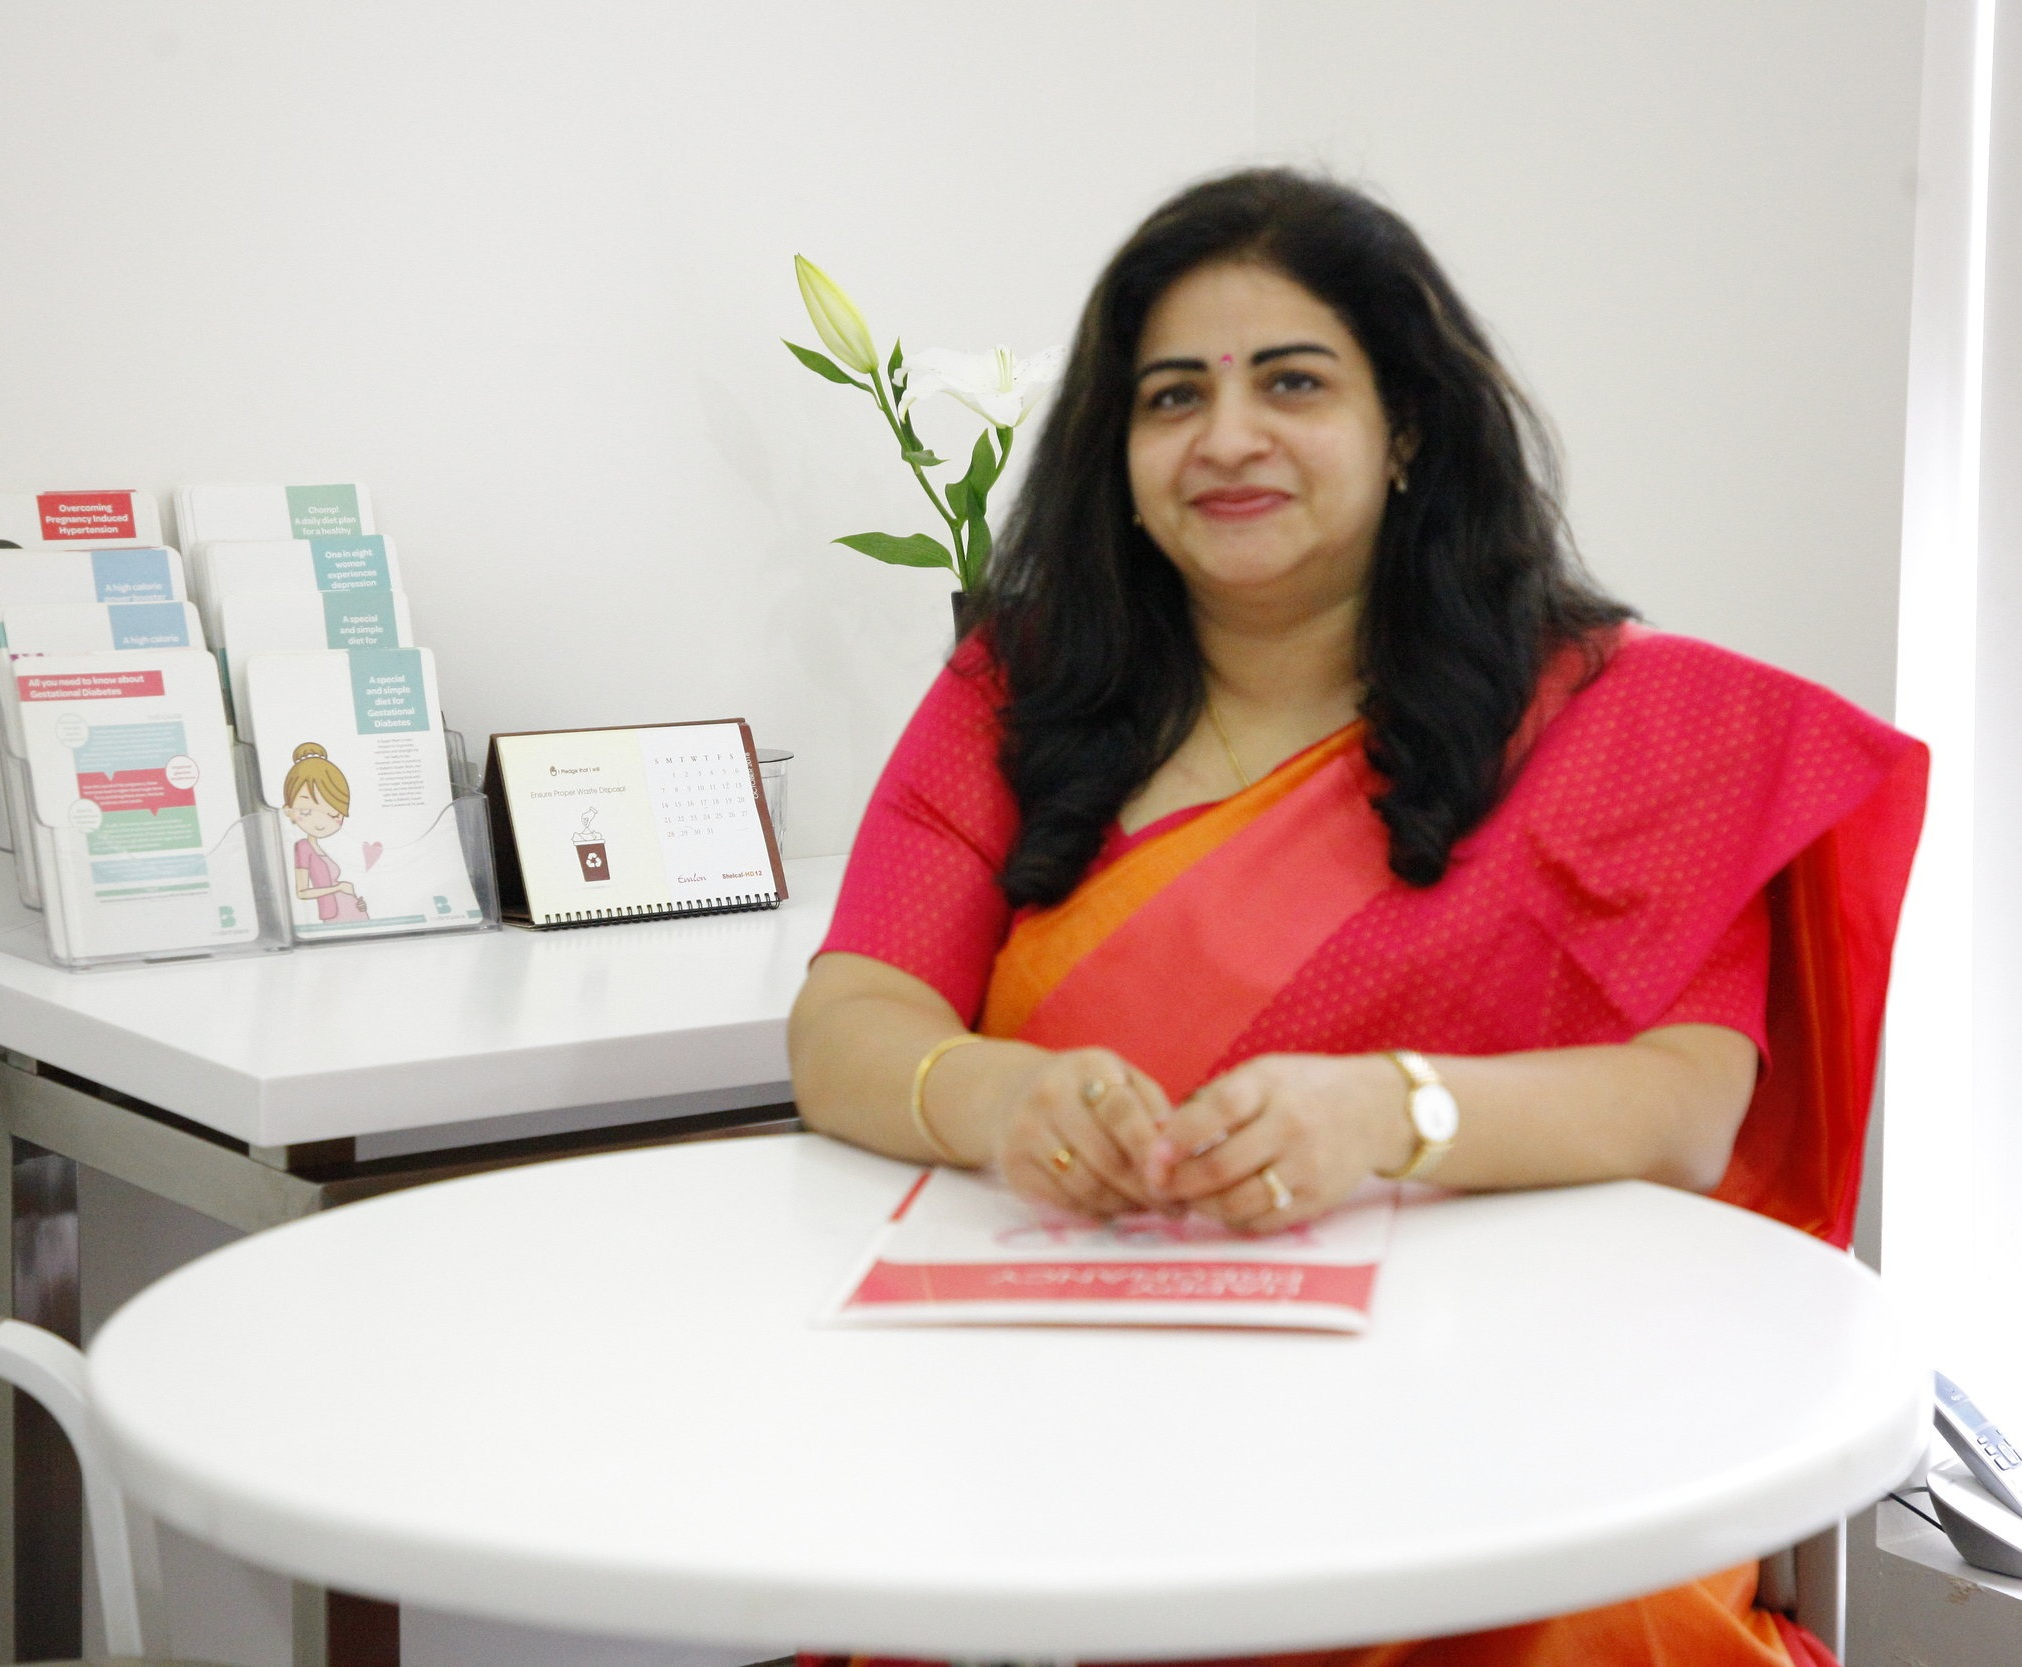 Dr. Pratibha Narayan is a Senior Obstetrician and Gynecologist at the Birthplace. In addition to her passion for obstetrics and preventive women's health, she an expert with many years of experience in VBAC. She excels and specializes in managing and treating routine and high-risk pregnancies, and recurrent pregnancy losses. She is also an expert in Cosmetic and aesthetic gynaecology.  To know more or to meet Dr. Pratibha, please call 040-45208108.